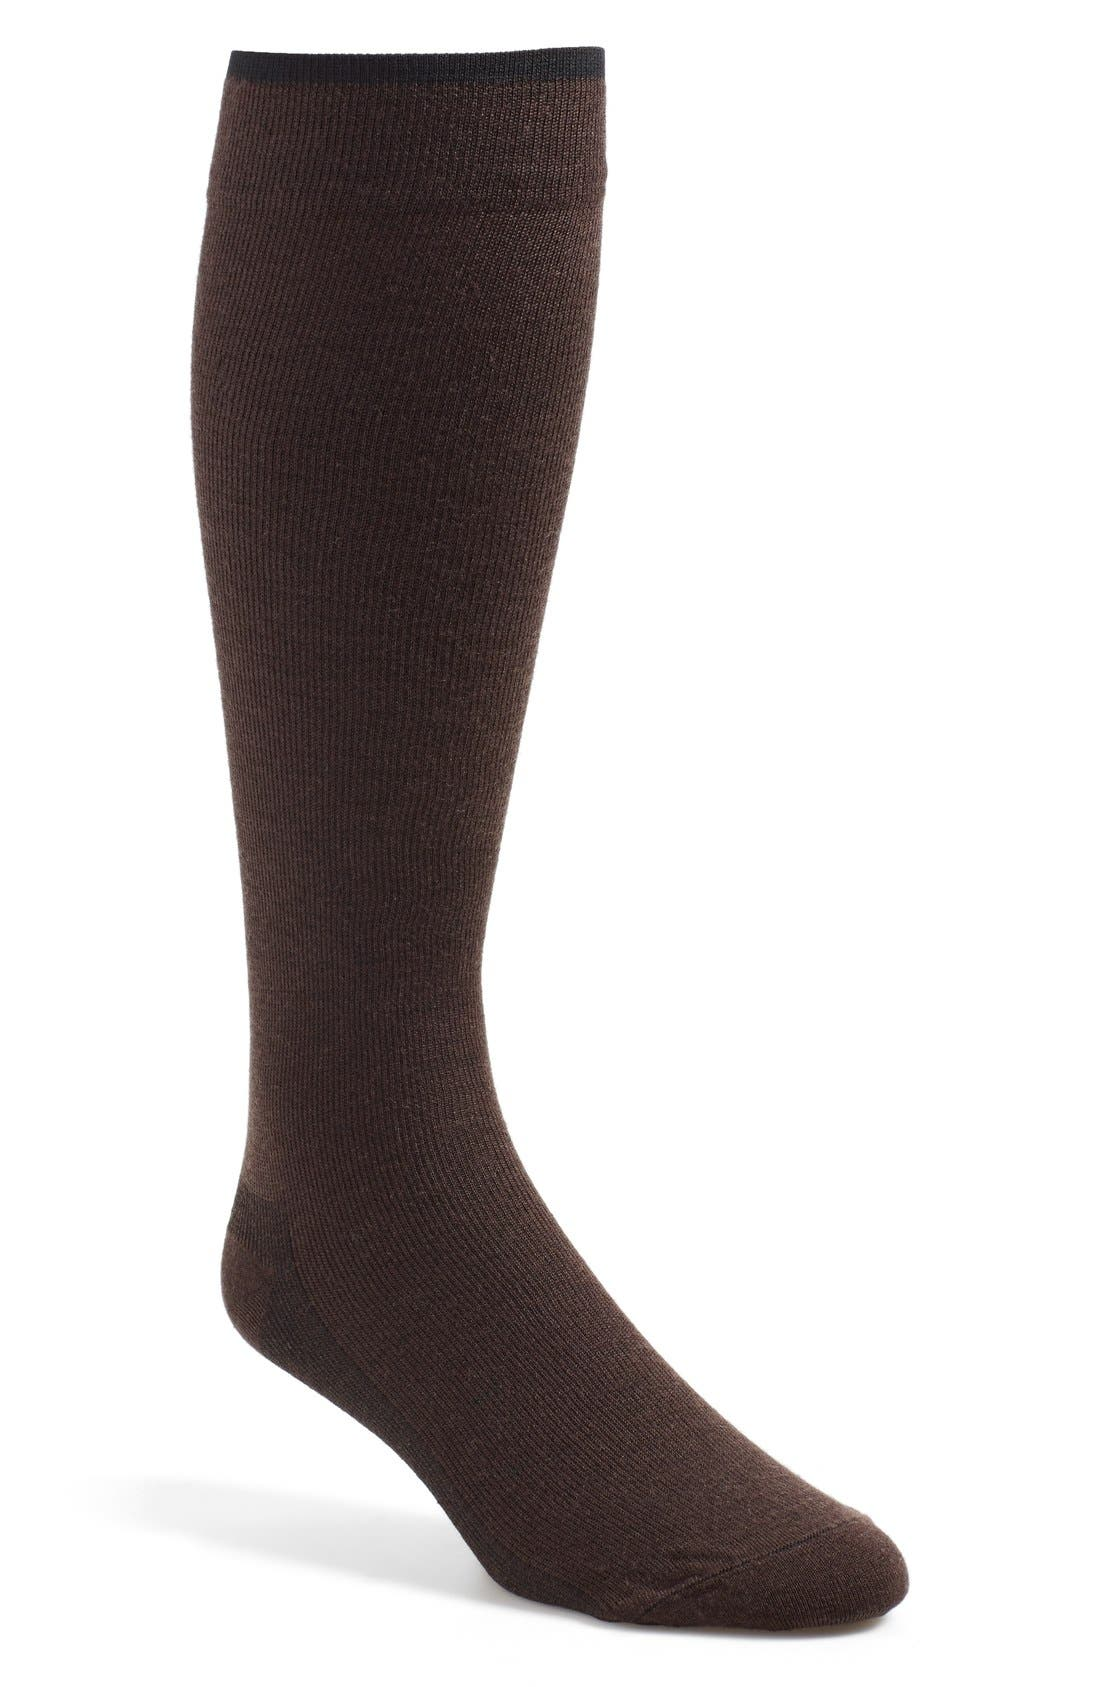 'Venturist' Over the Calf Socks,                             Main thumbnail 1, color,                             Brown